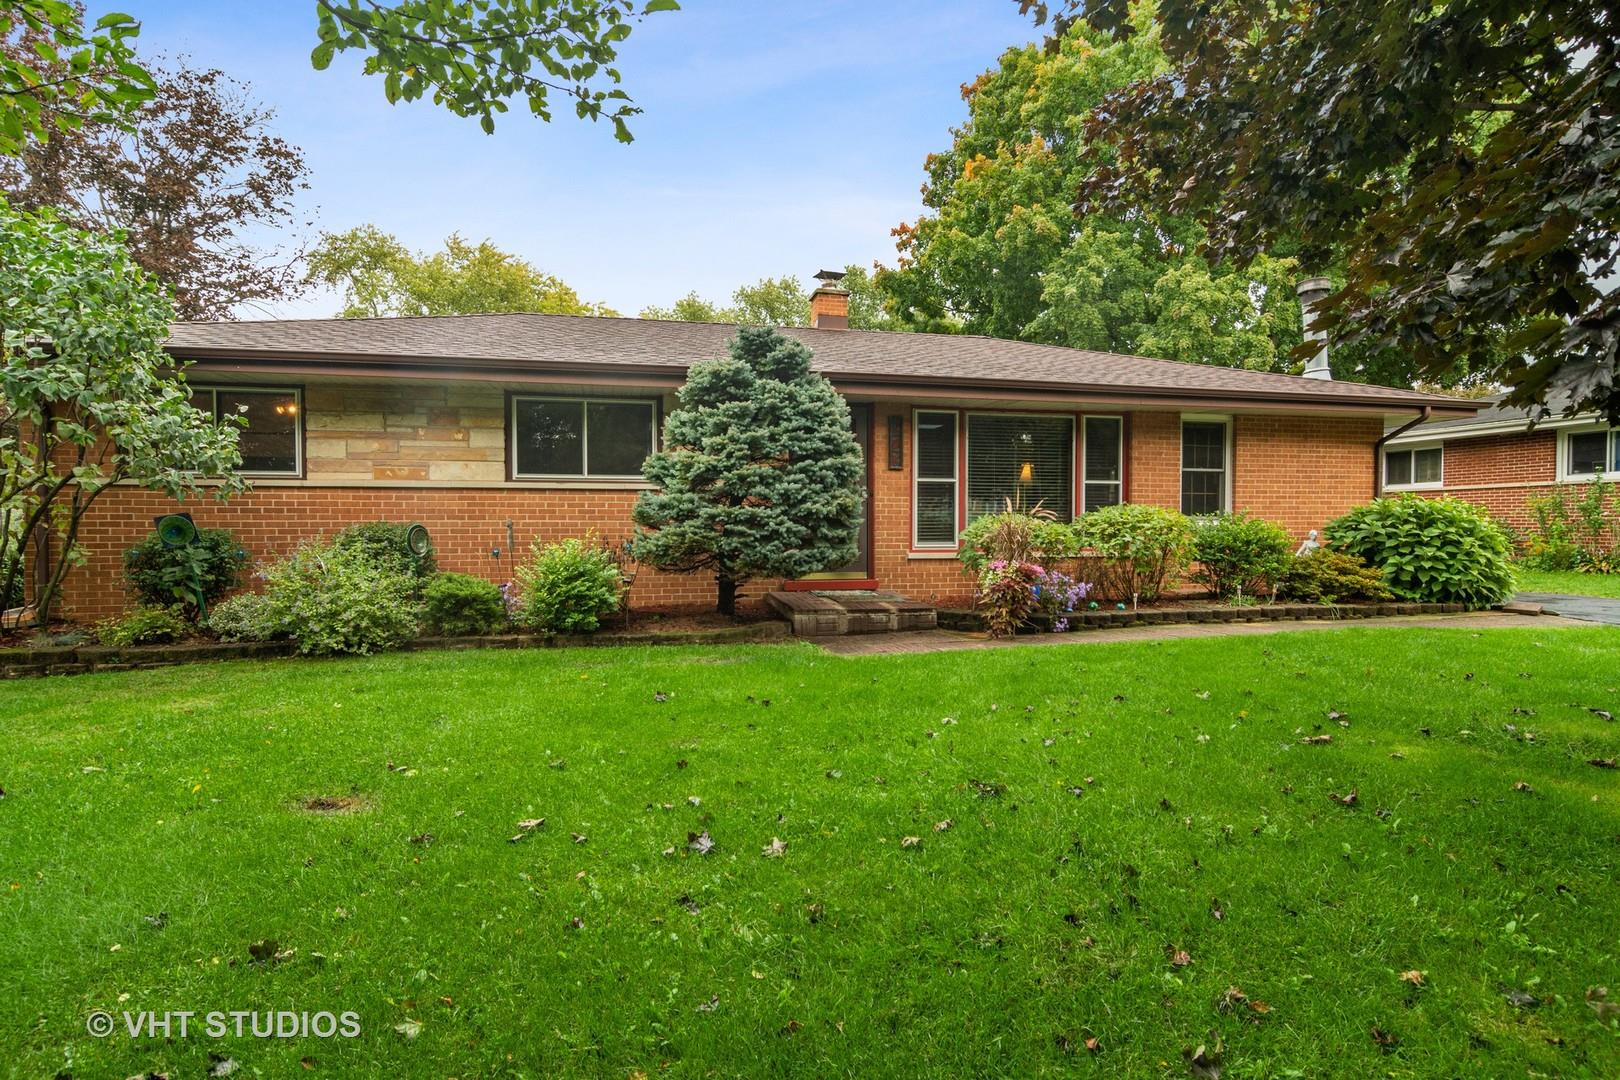 147 S Rohlwing Road, Palatine, IL 60074 - #: 10911425